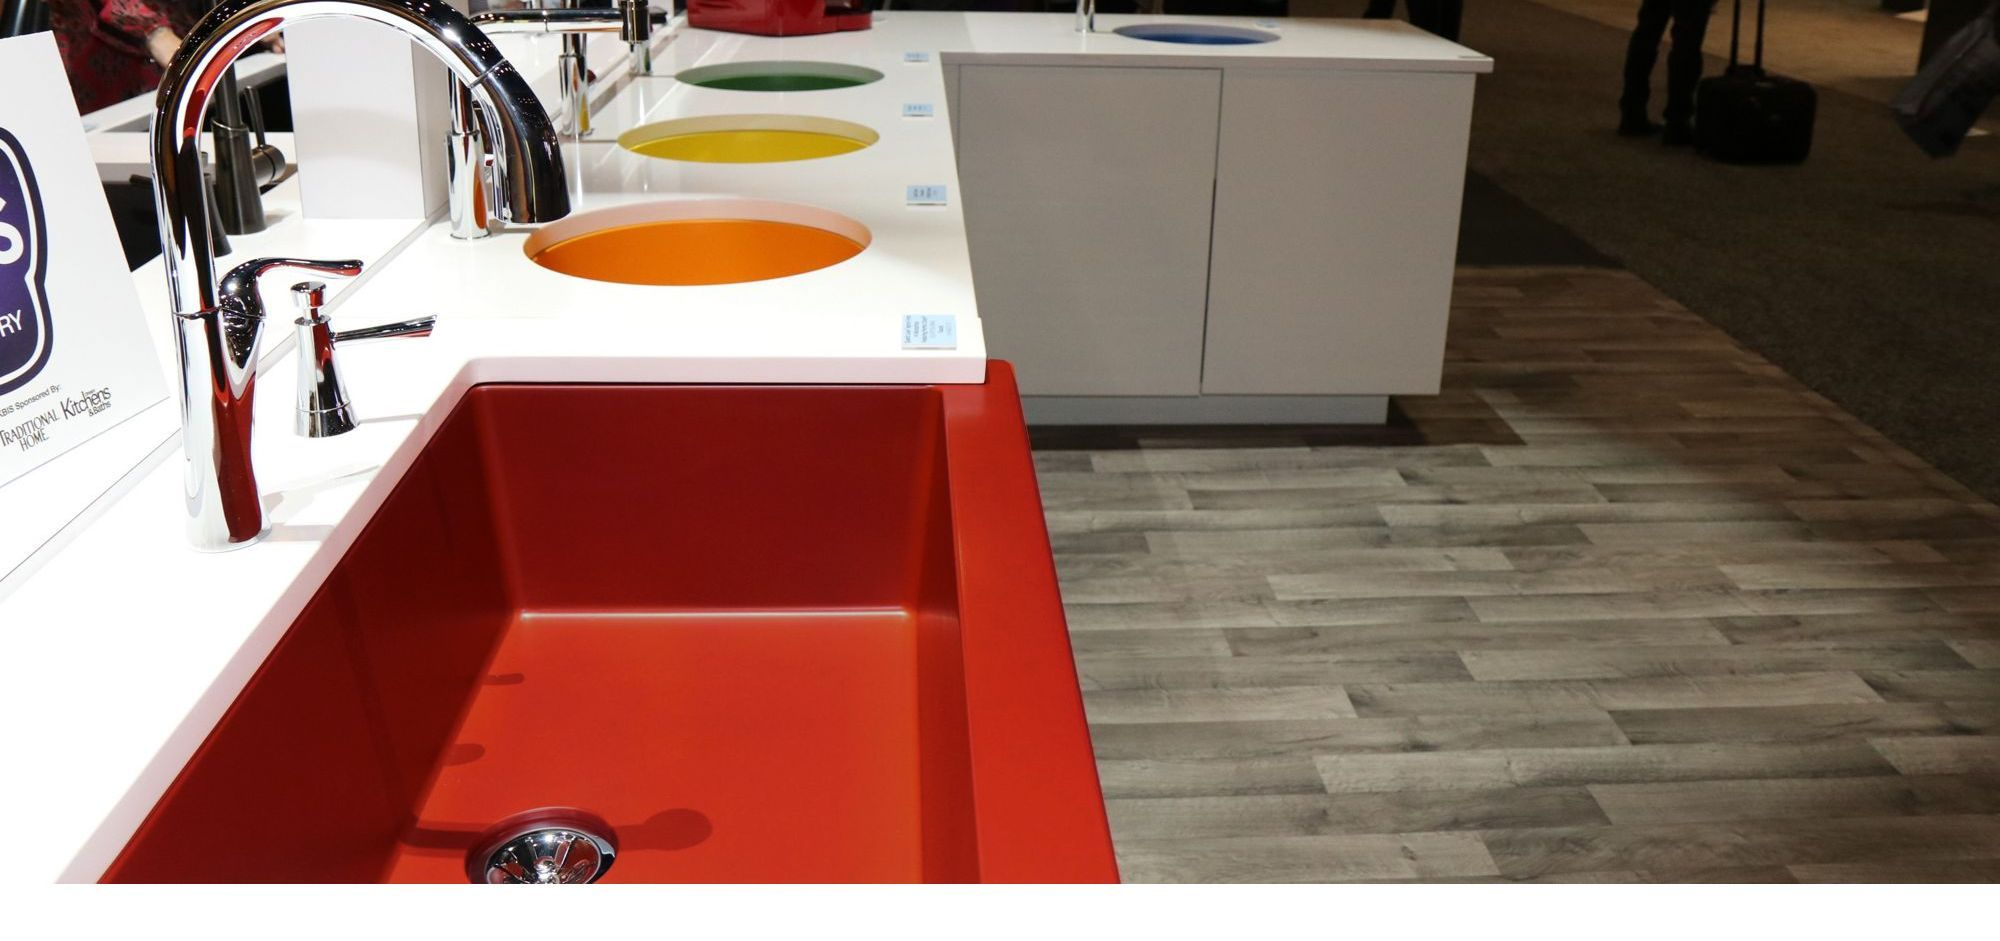 Superior At KBIS 2017, Kitchen And Bath Industry Show, Elkay Is Featuring Their  Latest Product